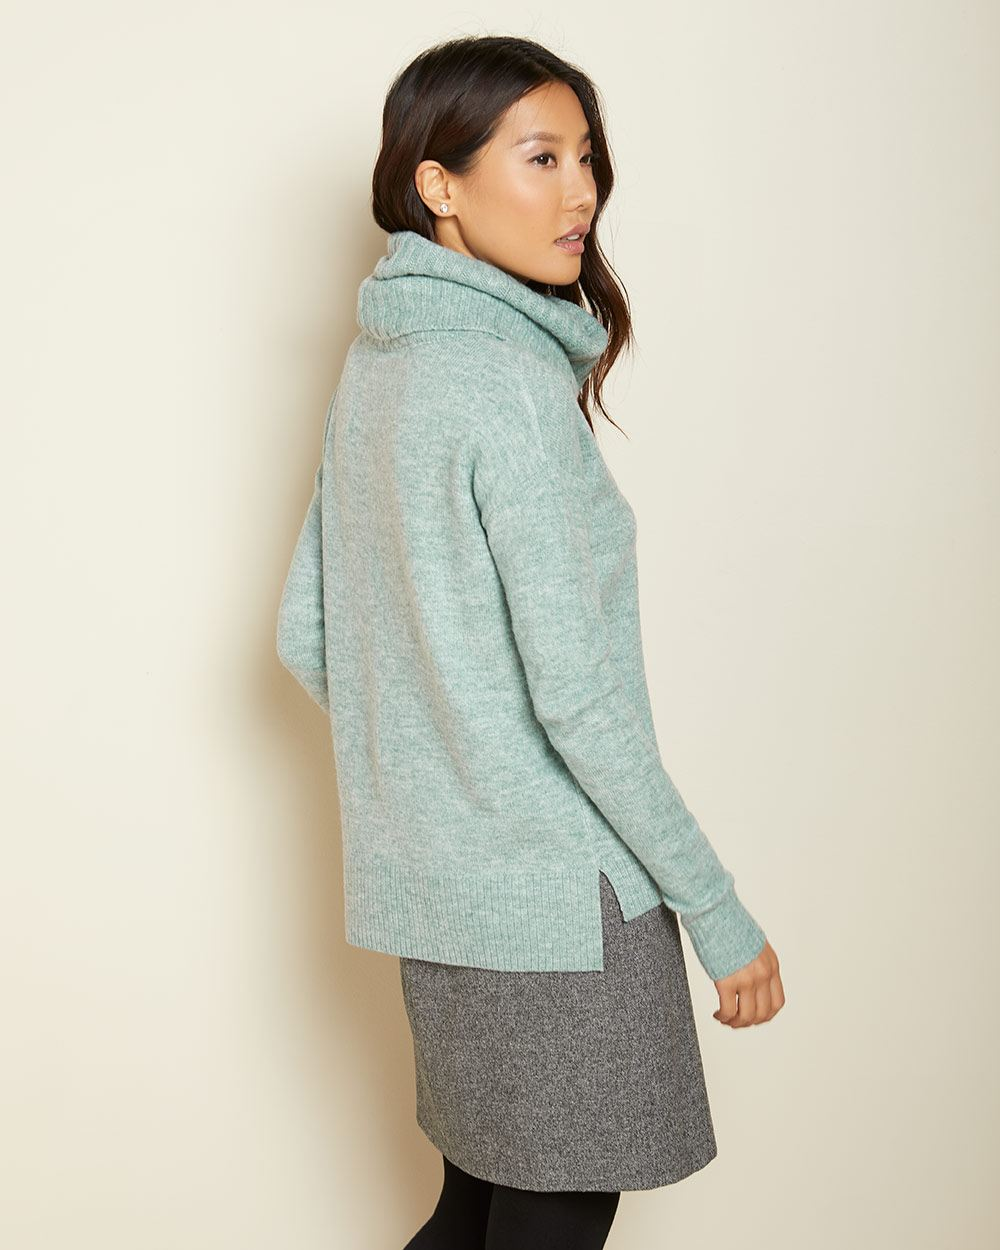 Spongy knit Oversize collar sweater